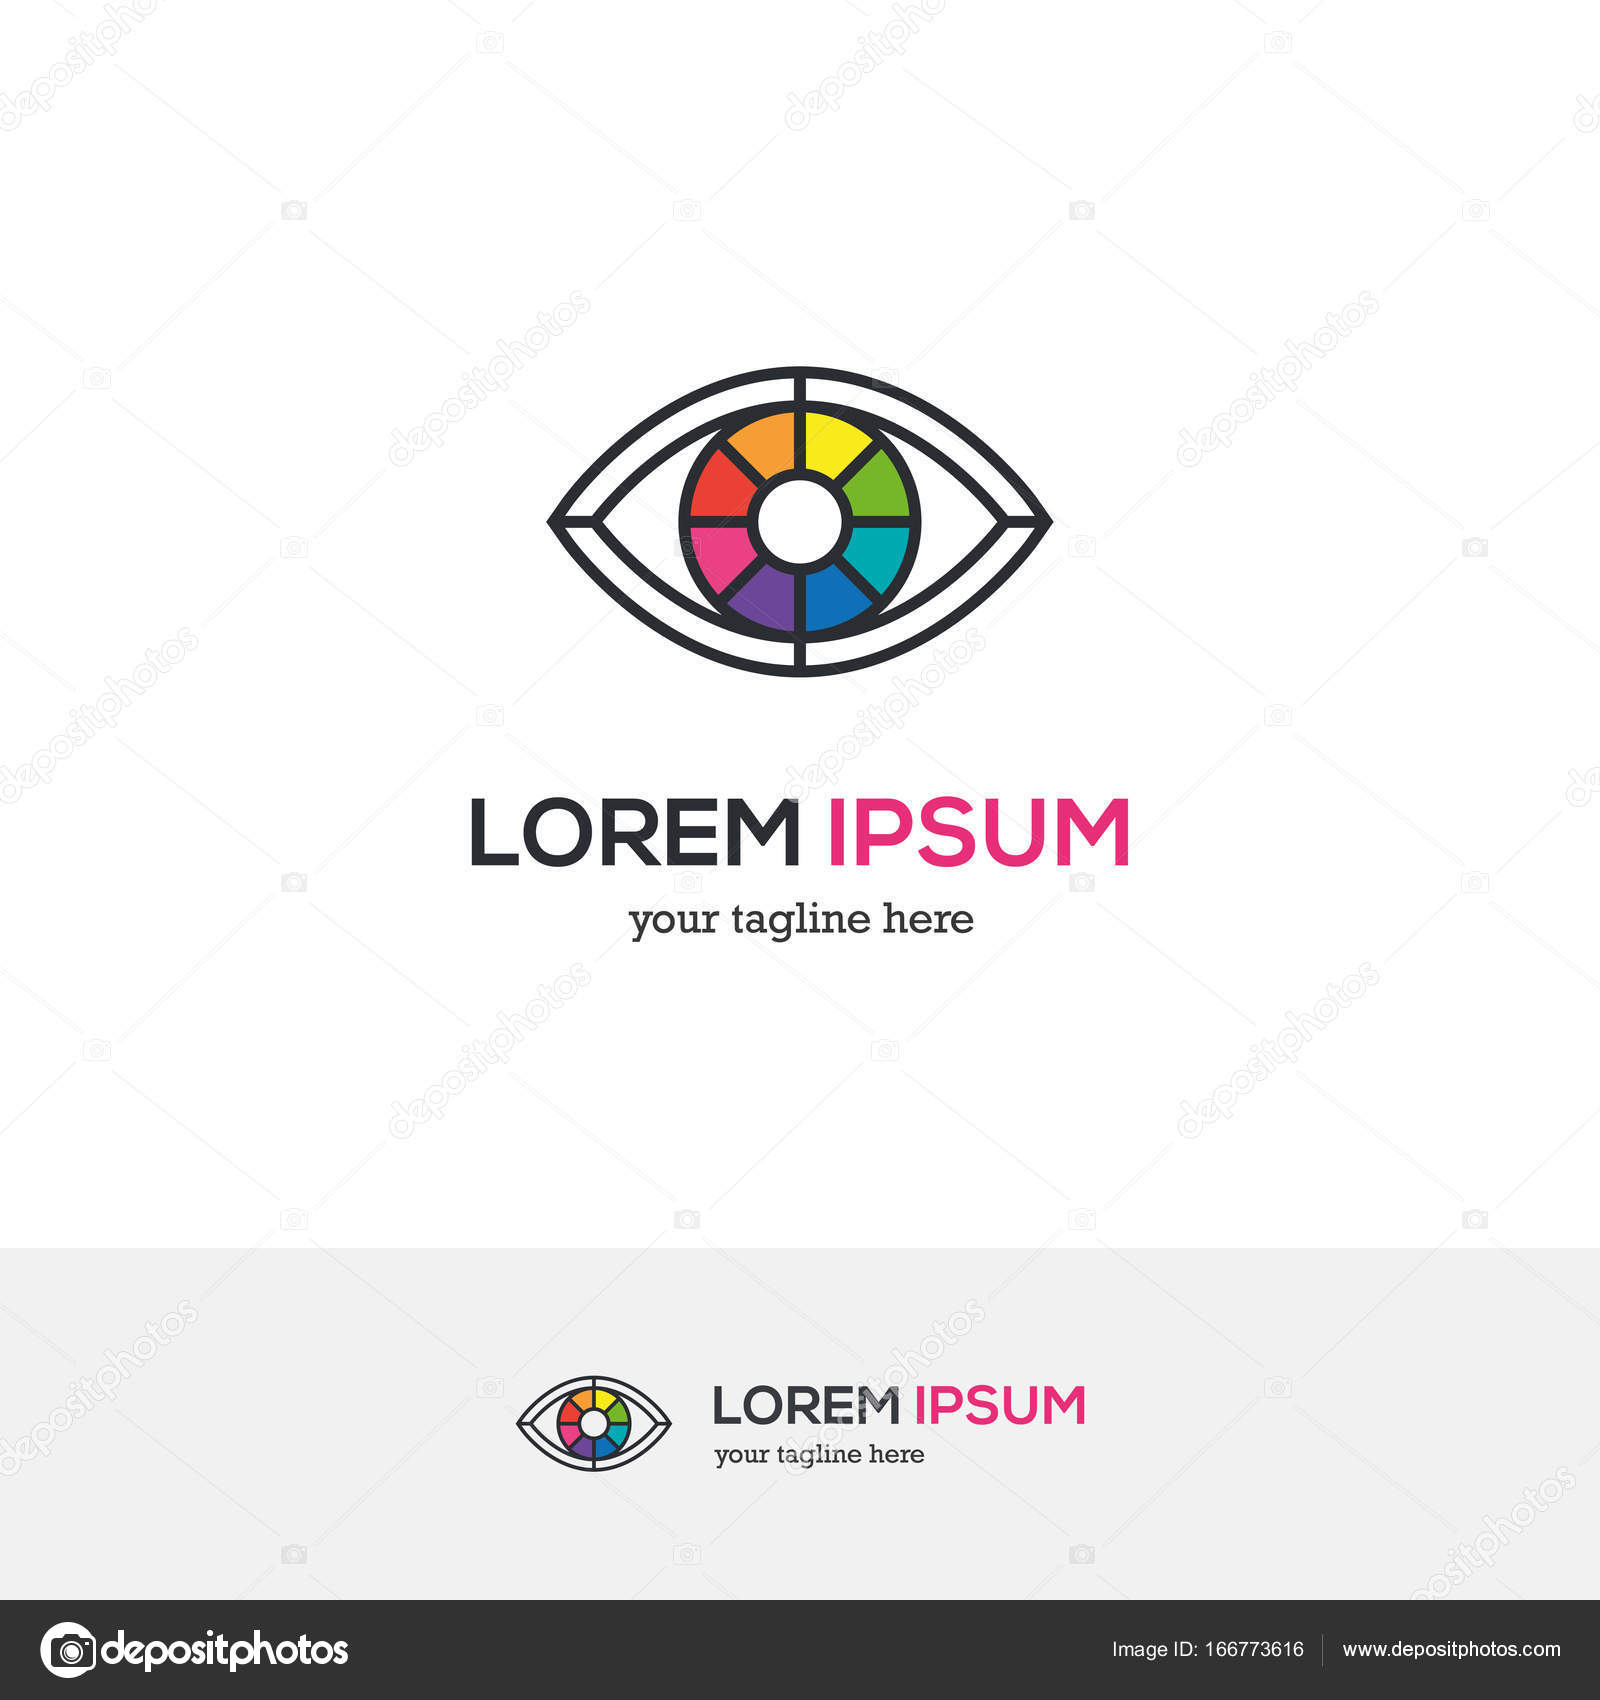 Bright Creative Eye Logo Looking Like A Color Wheel Colorful Vision Symbol Linear Icon Vector By Maglyvi